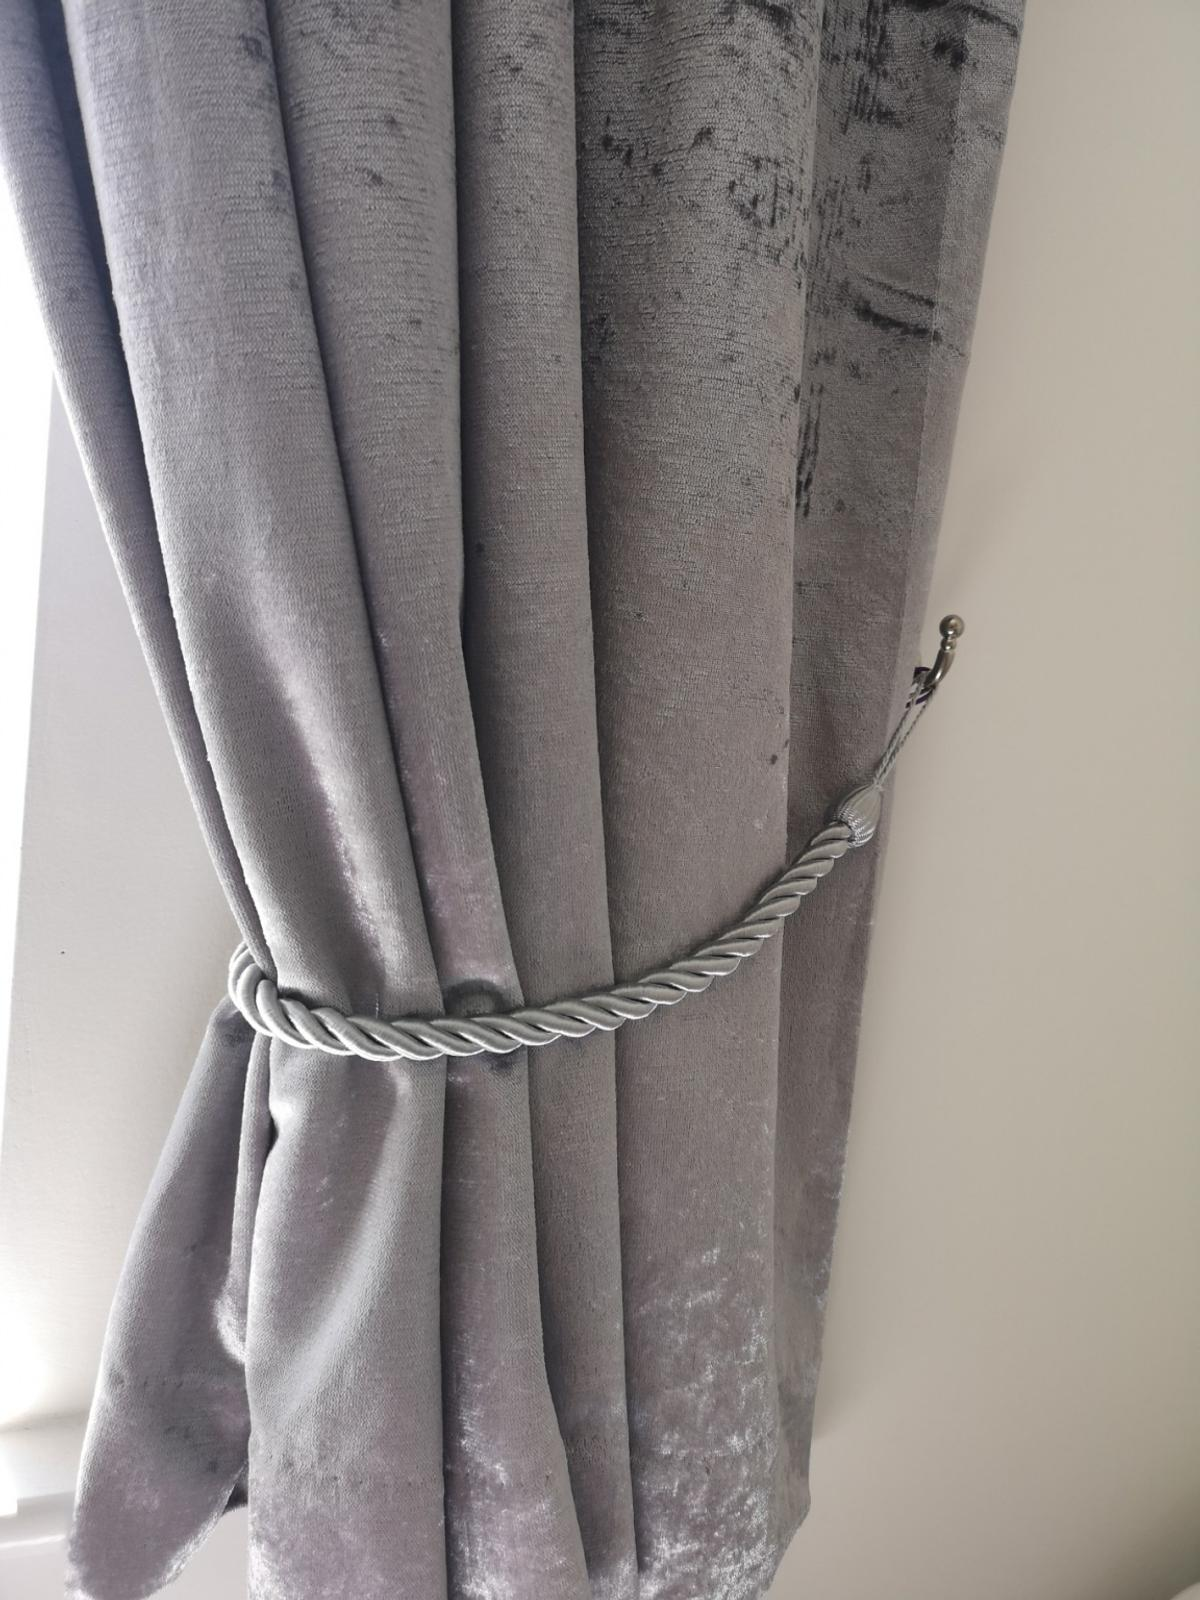 Silver Crushed Velvet Curtains In S70 Barnsley For 10 00 For Sale Shpock